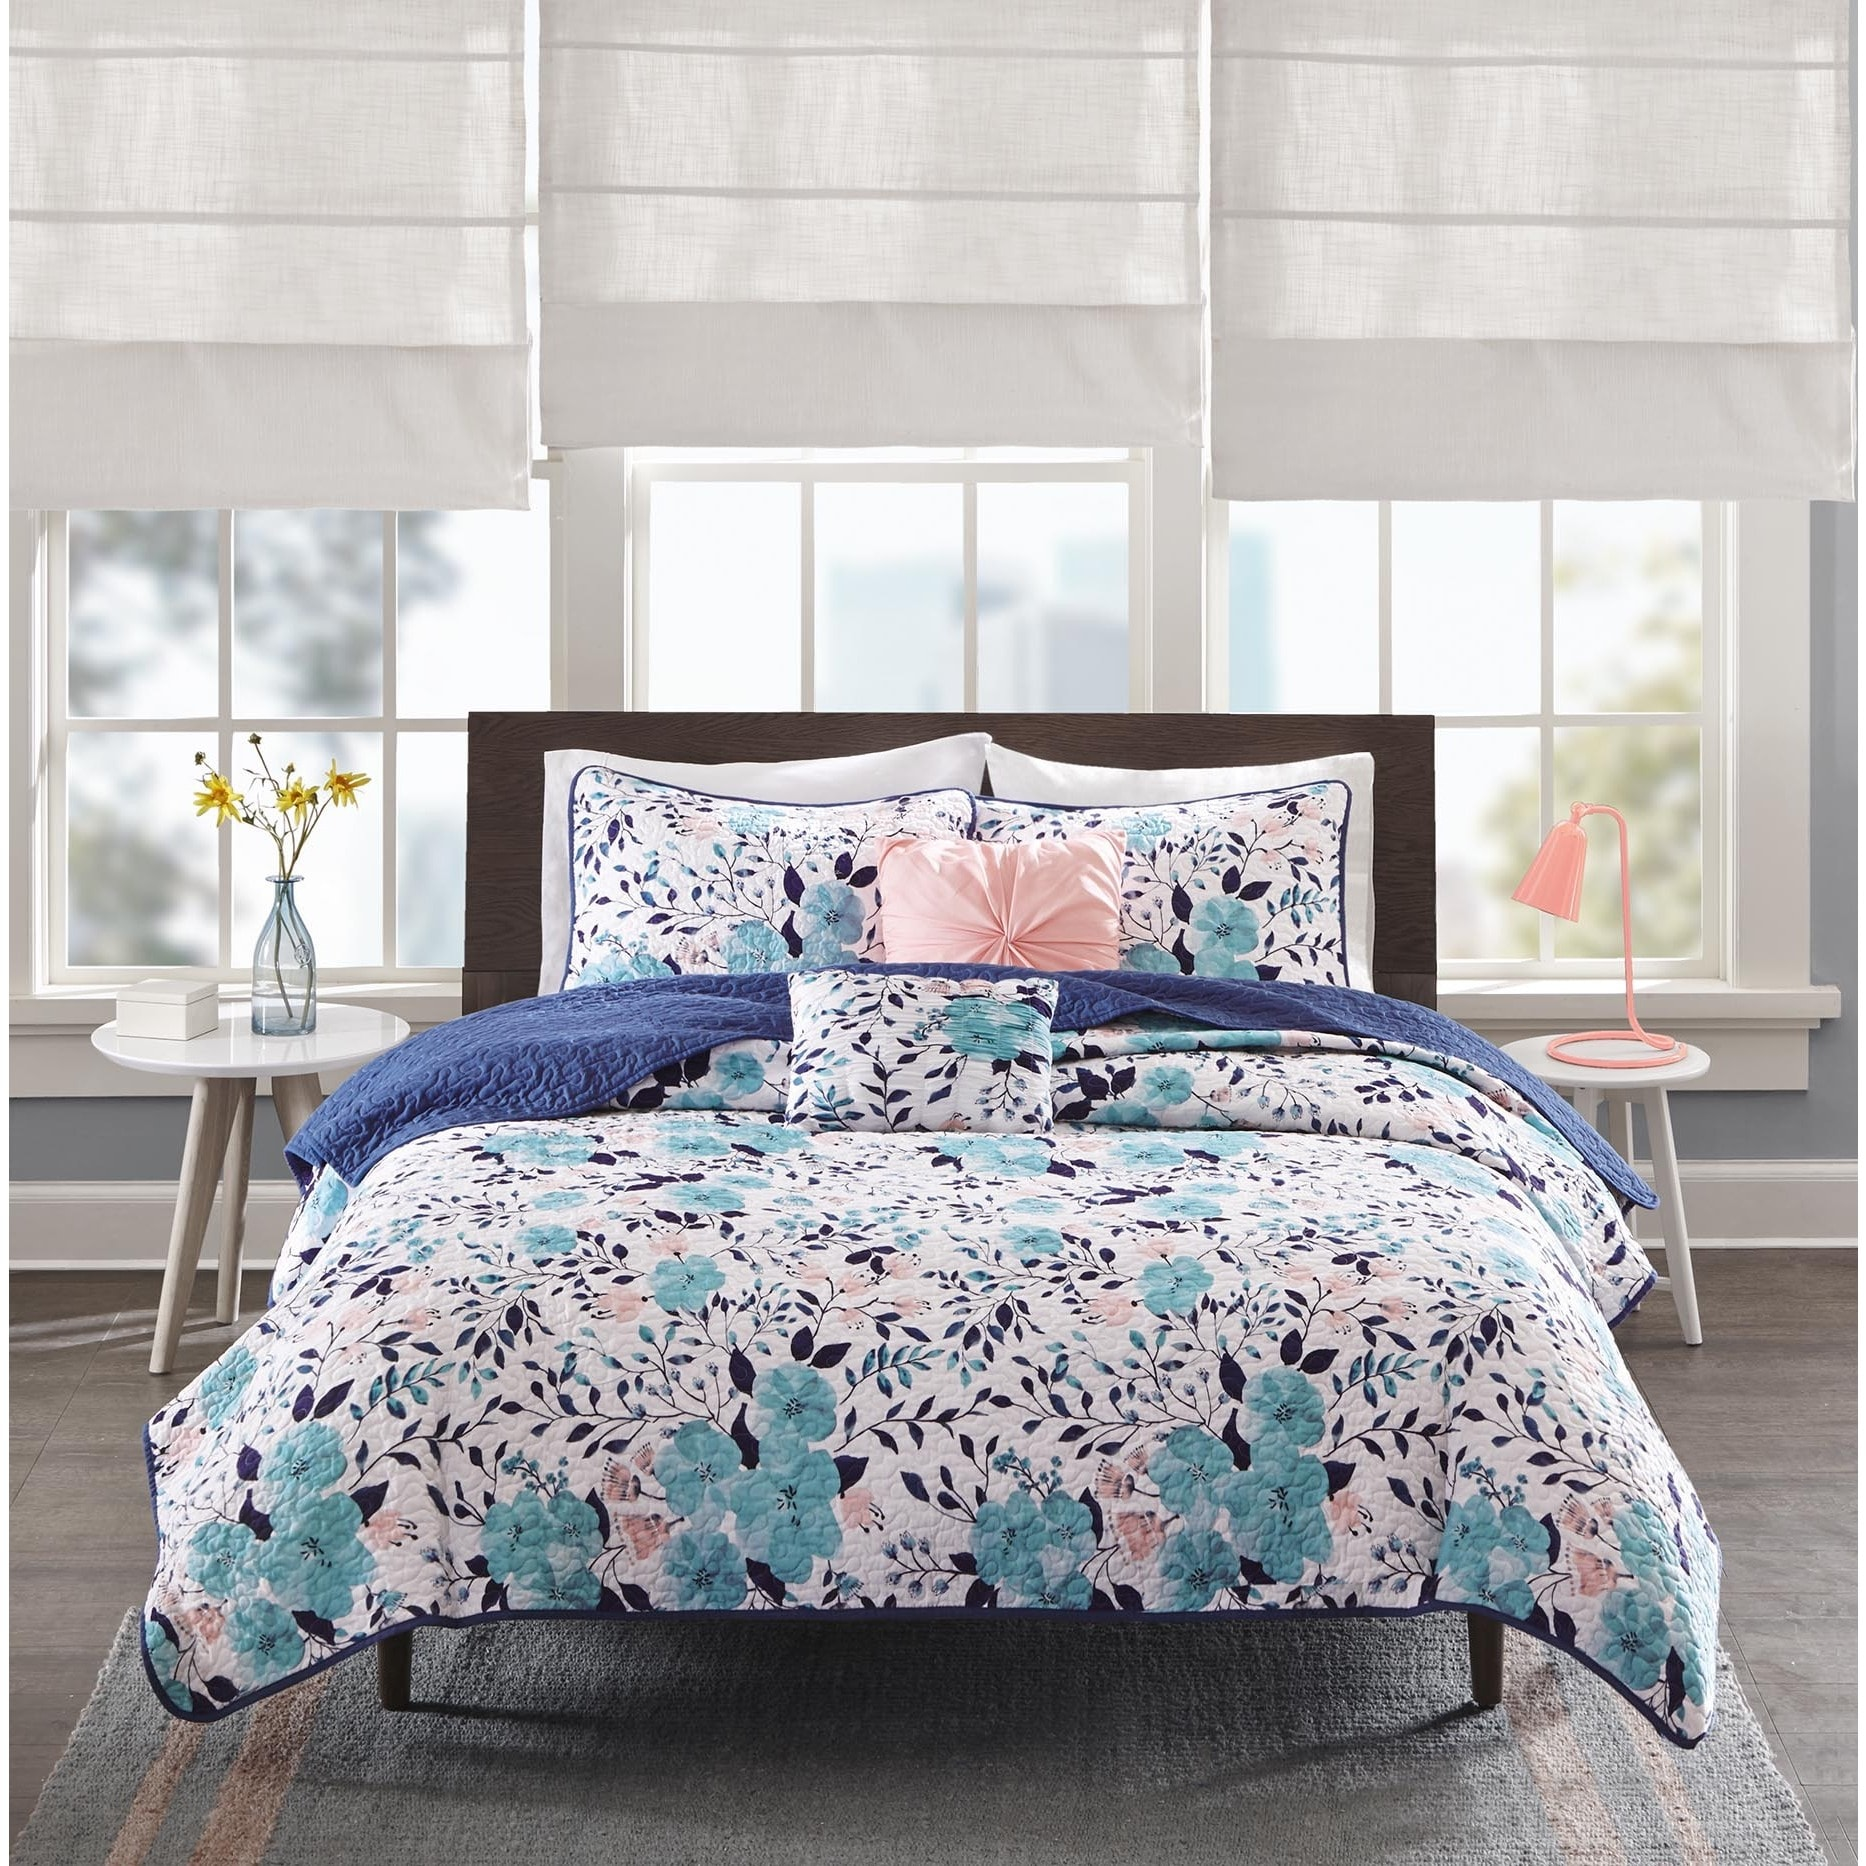 tiffany bath comforter today product piece vcny set free overstock bed shipping bedding dotty blue